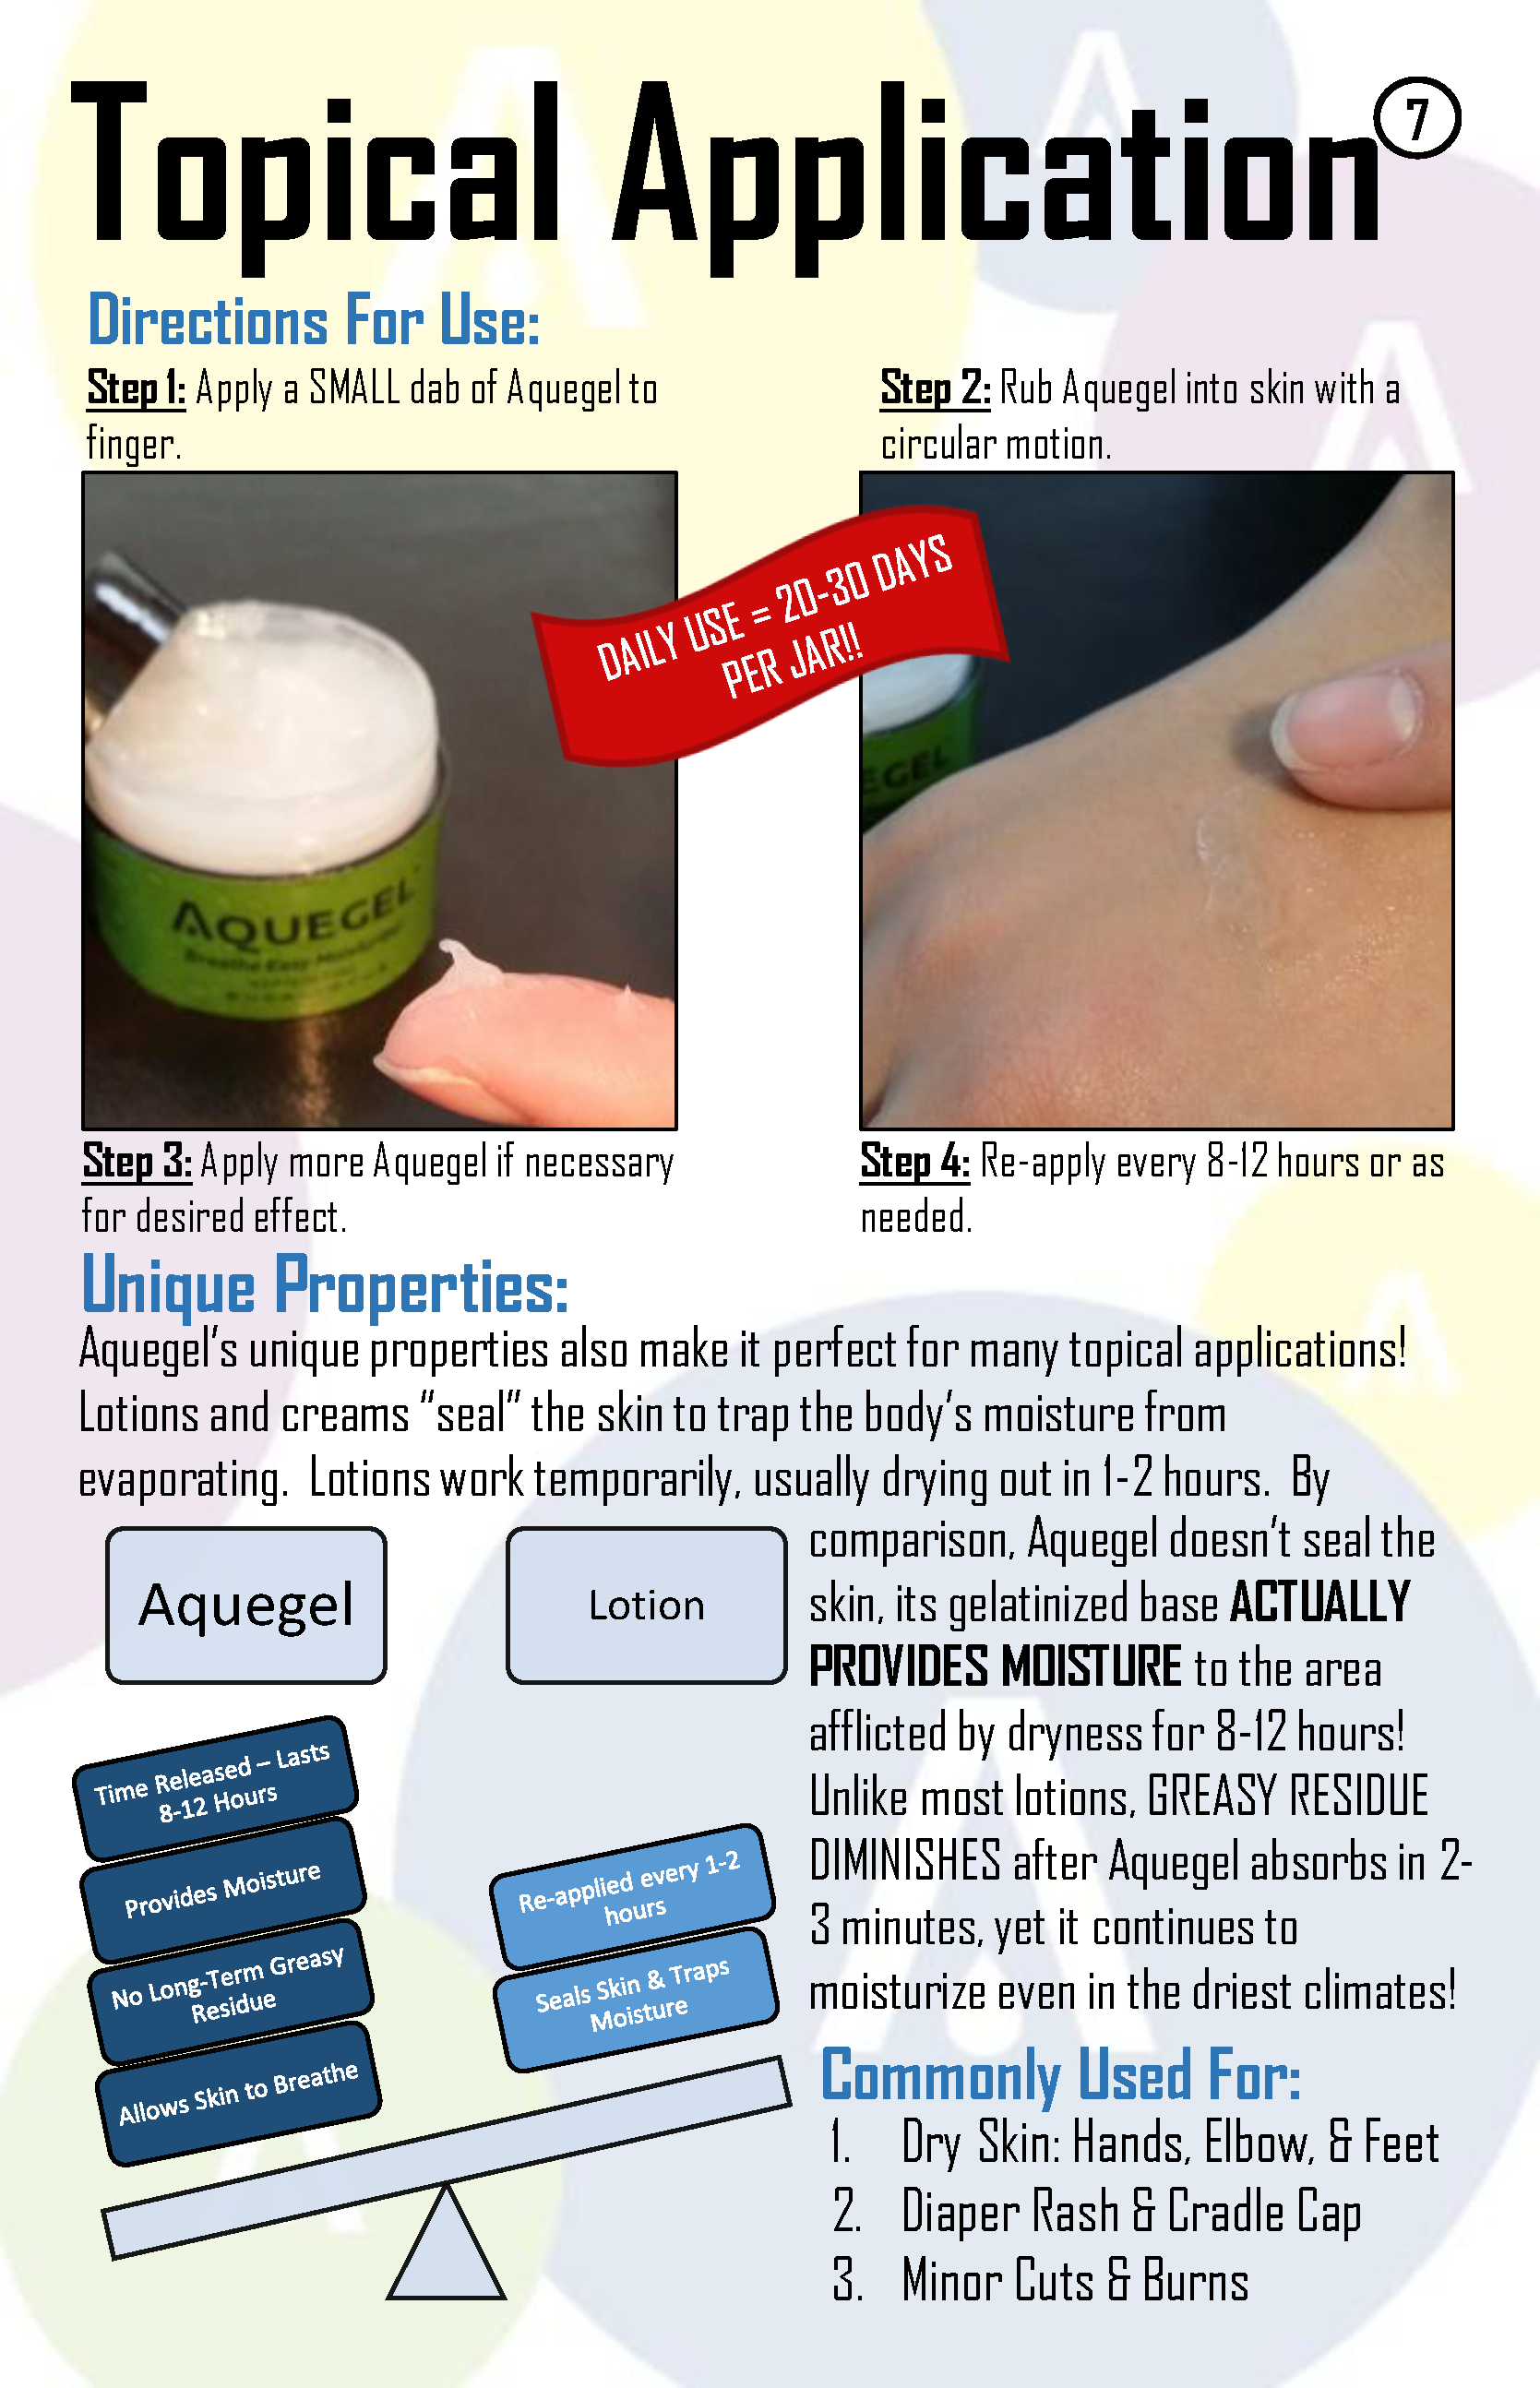 Aquegel Topical Application - 7